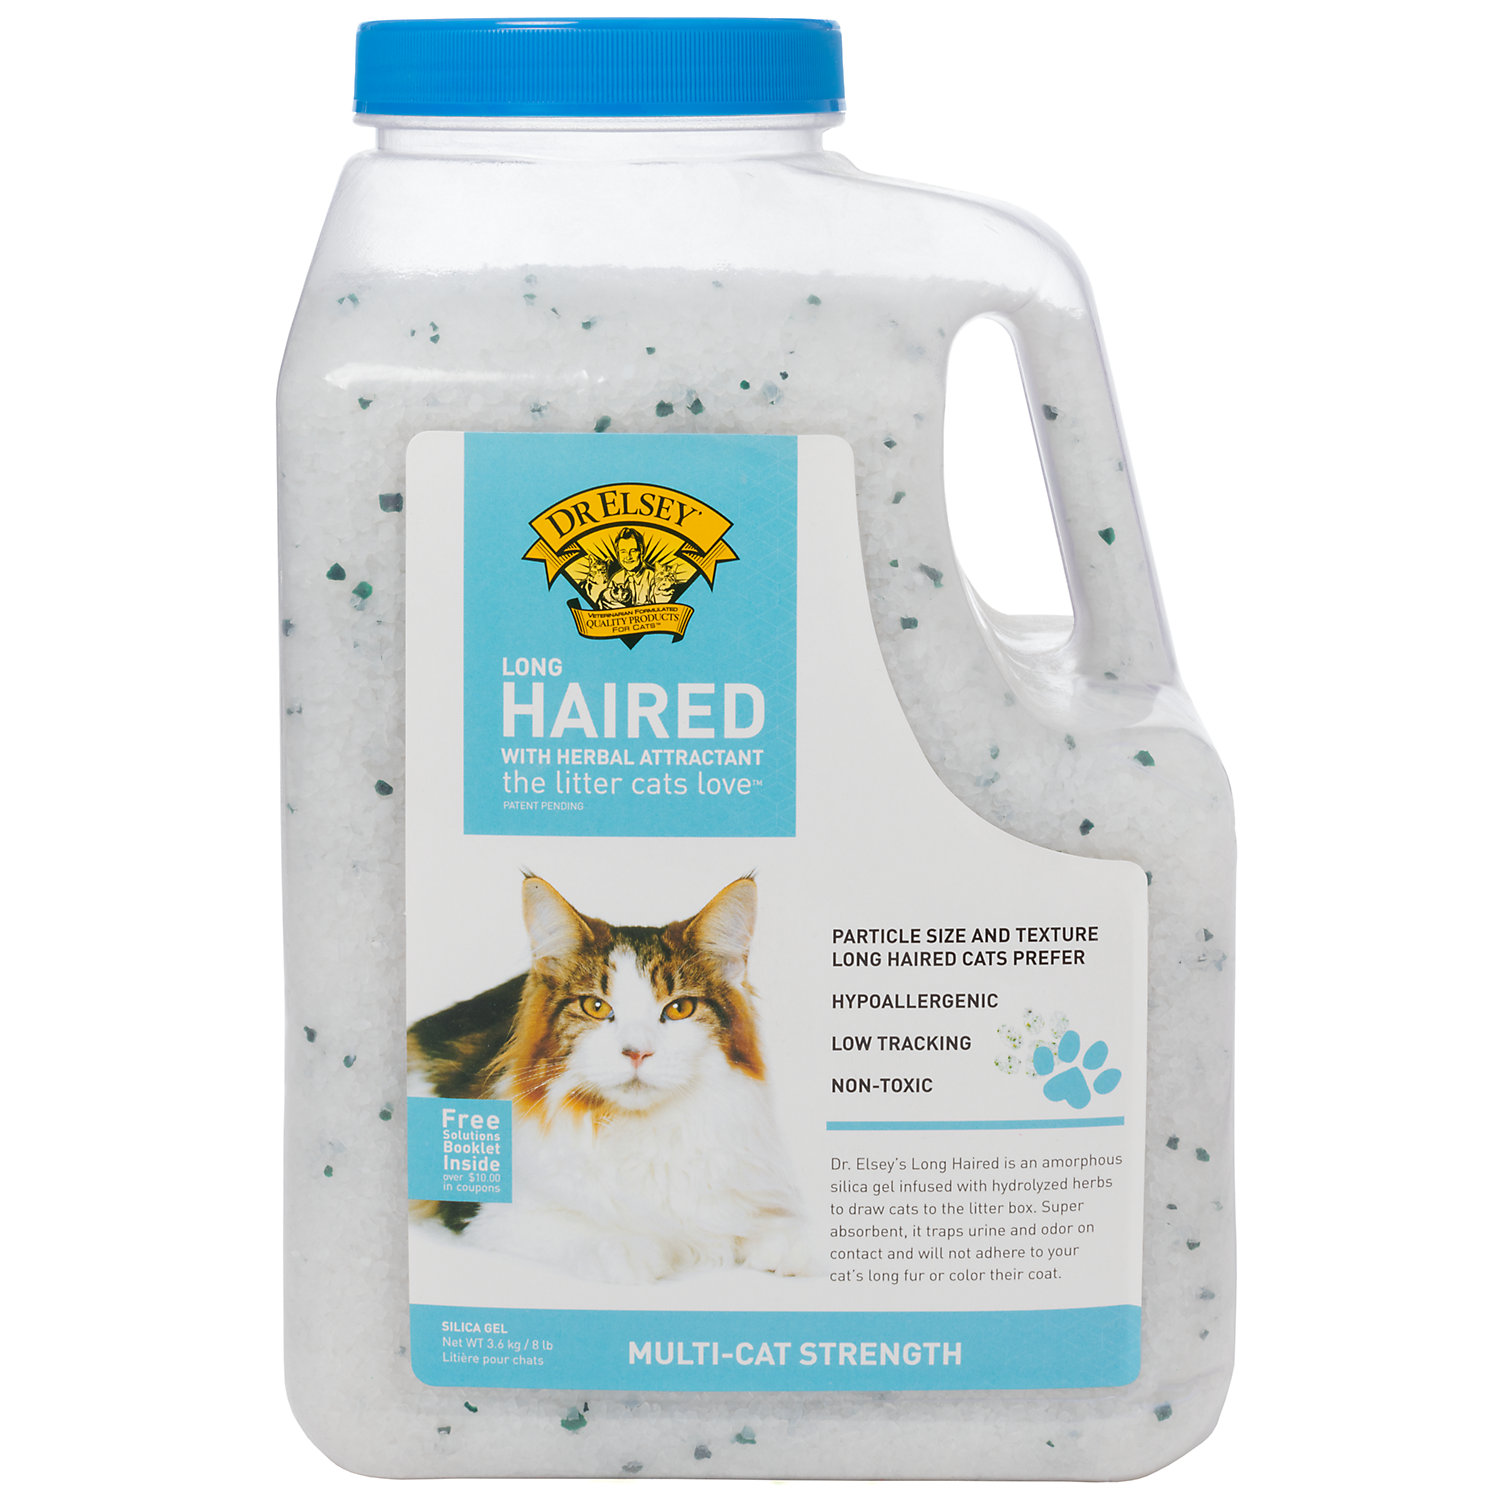 Dr. Elsey's Precious Cat Long Haired Cat Litter, 8 lbs.